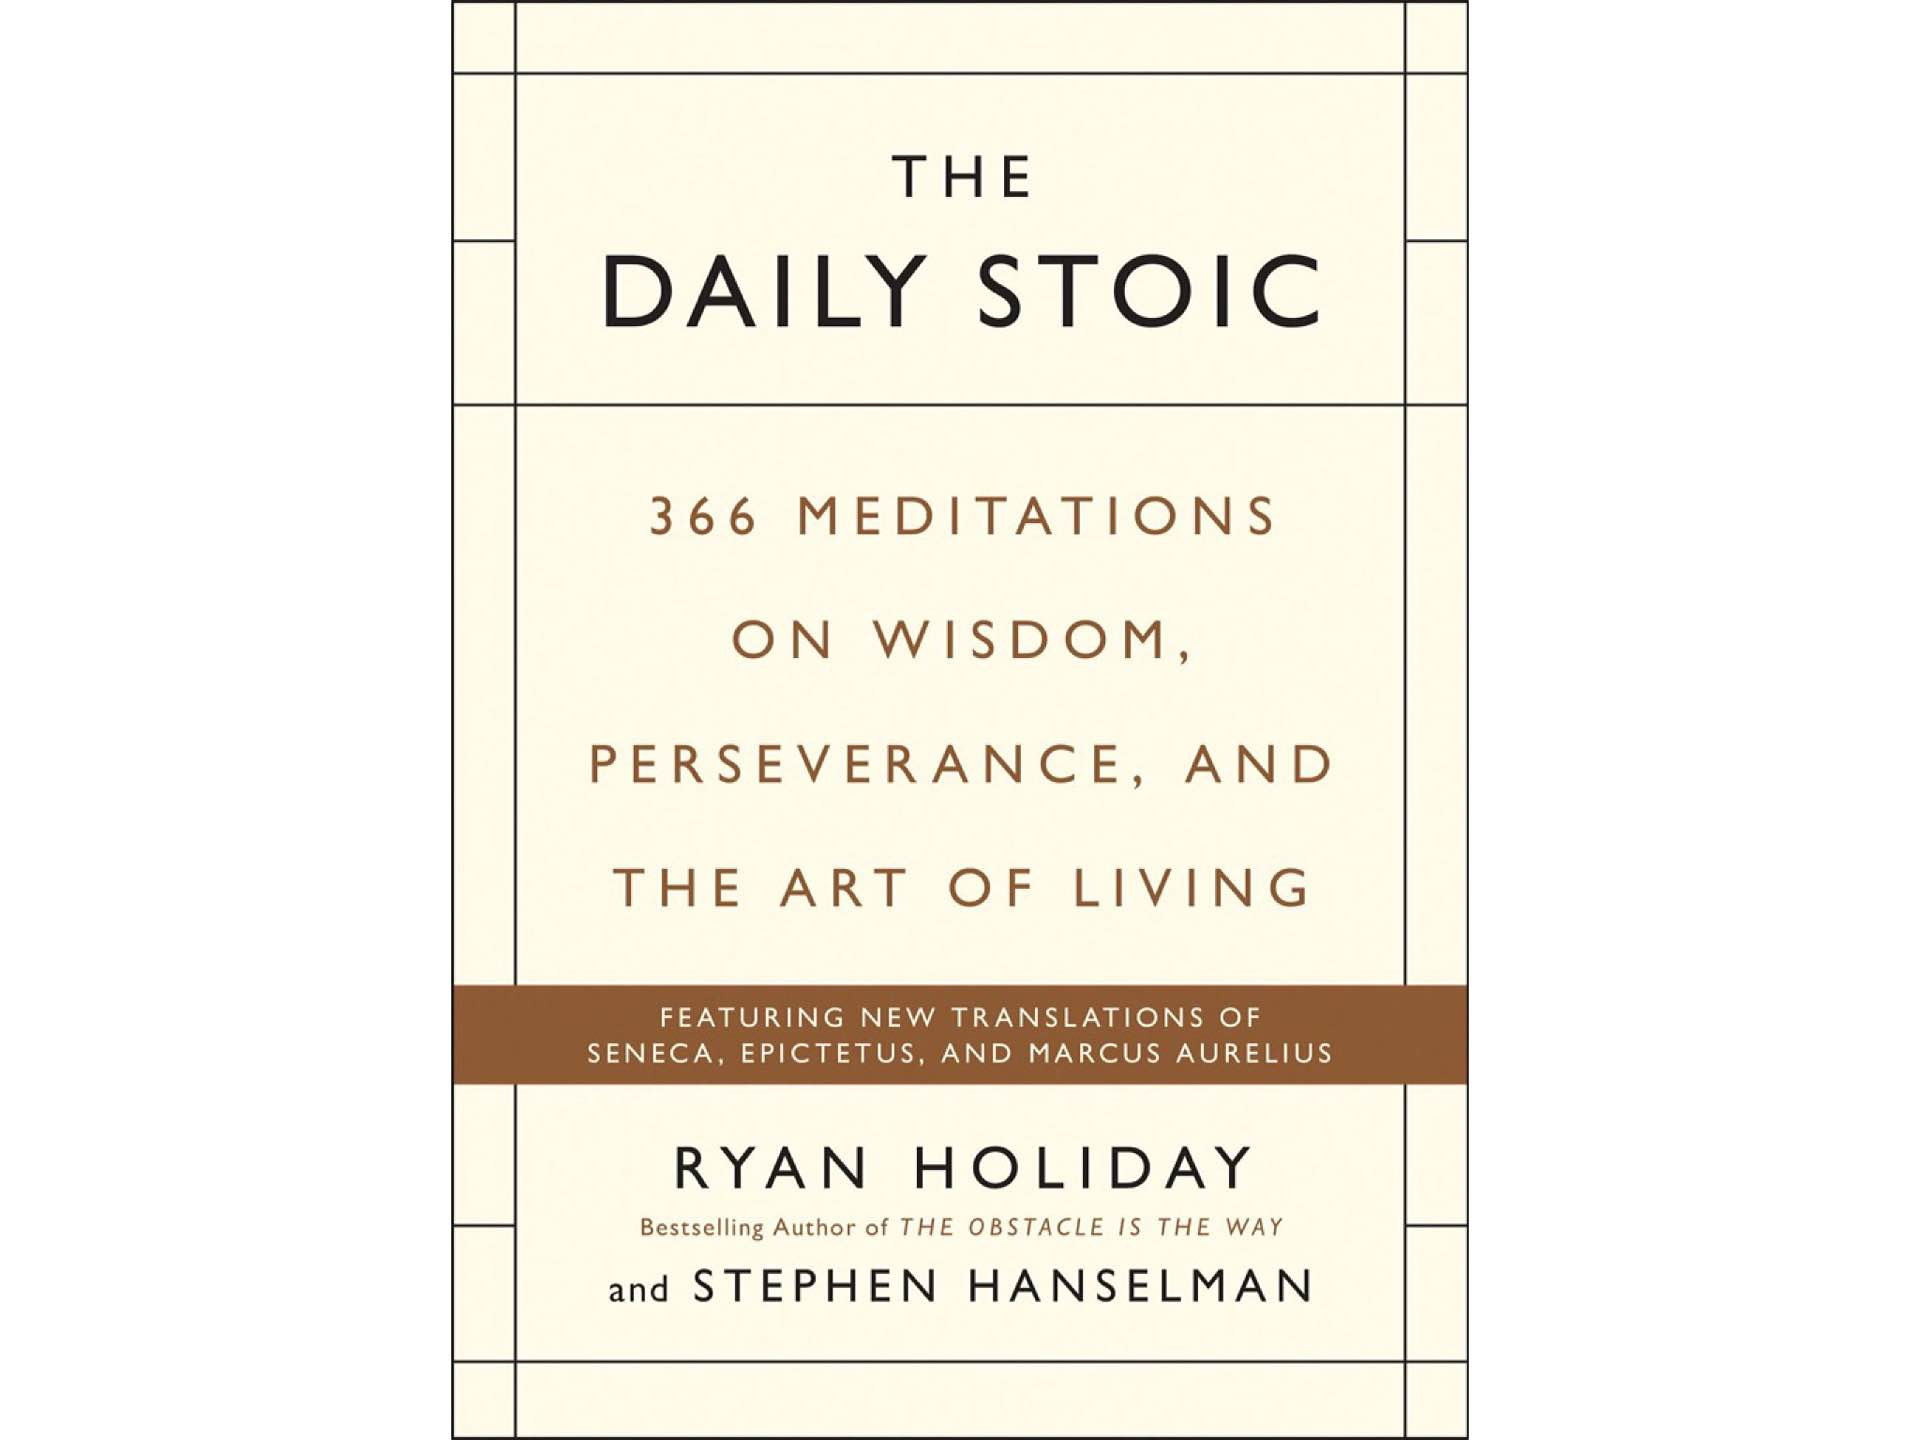 The Daily Stoic by Ryan Holiday.